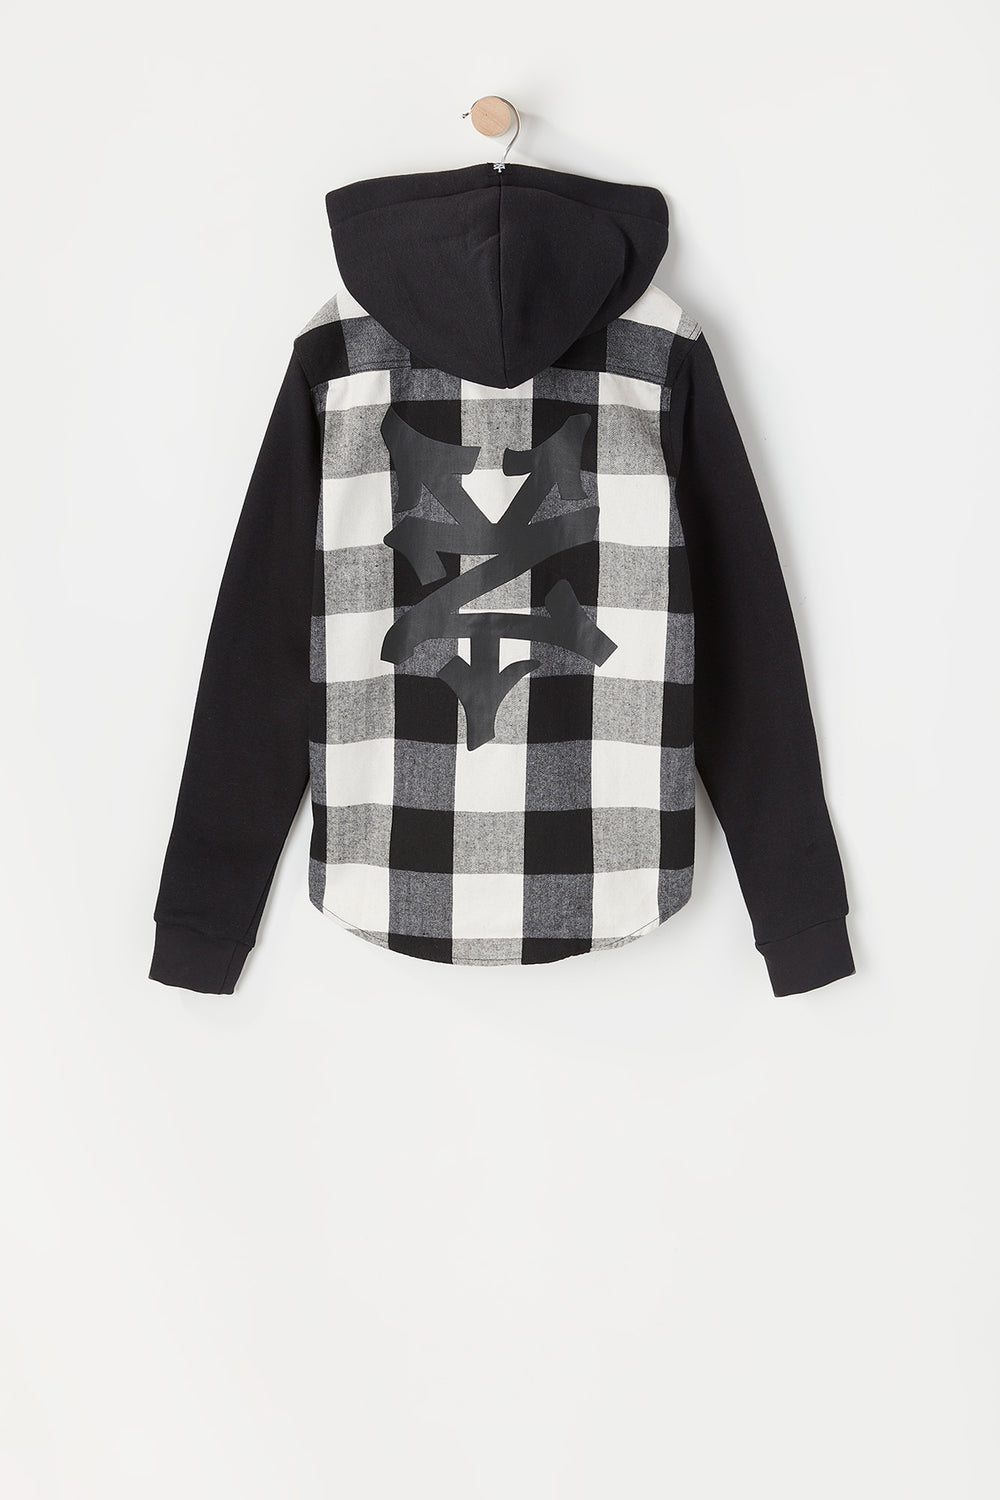 Zoo York Youth Hooded Flannel Button-Up Shirt White